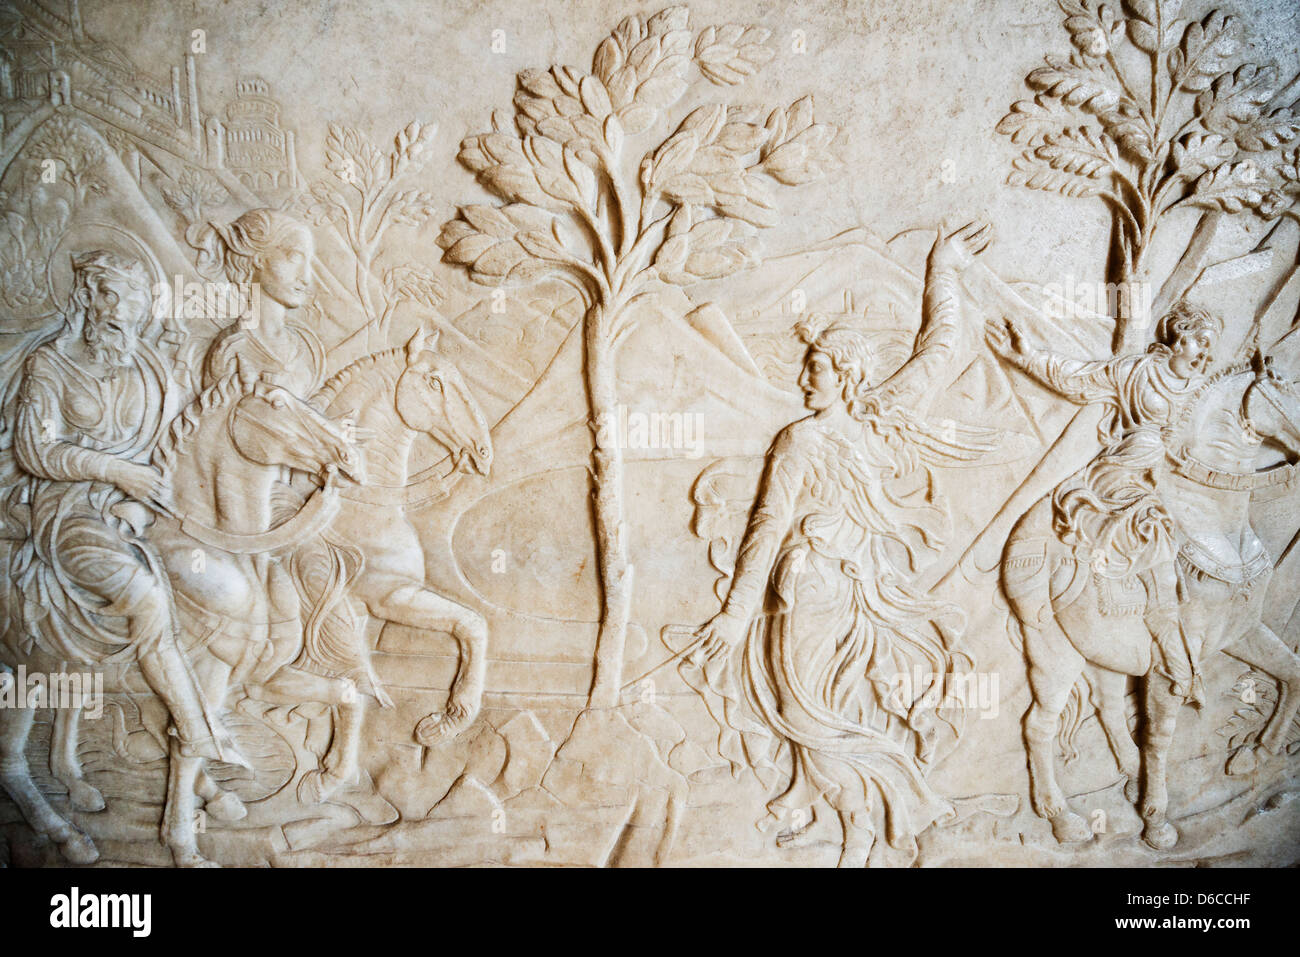 Europe, Italy, Lombardy, Milan, museum at Castle Sforzesco, marble sculpture Stock Photo